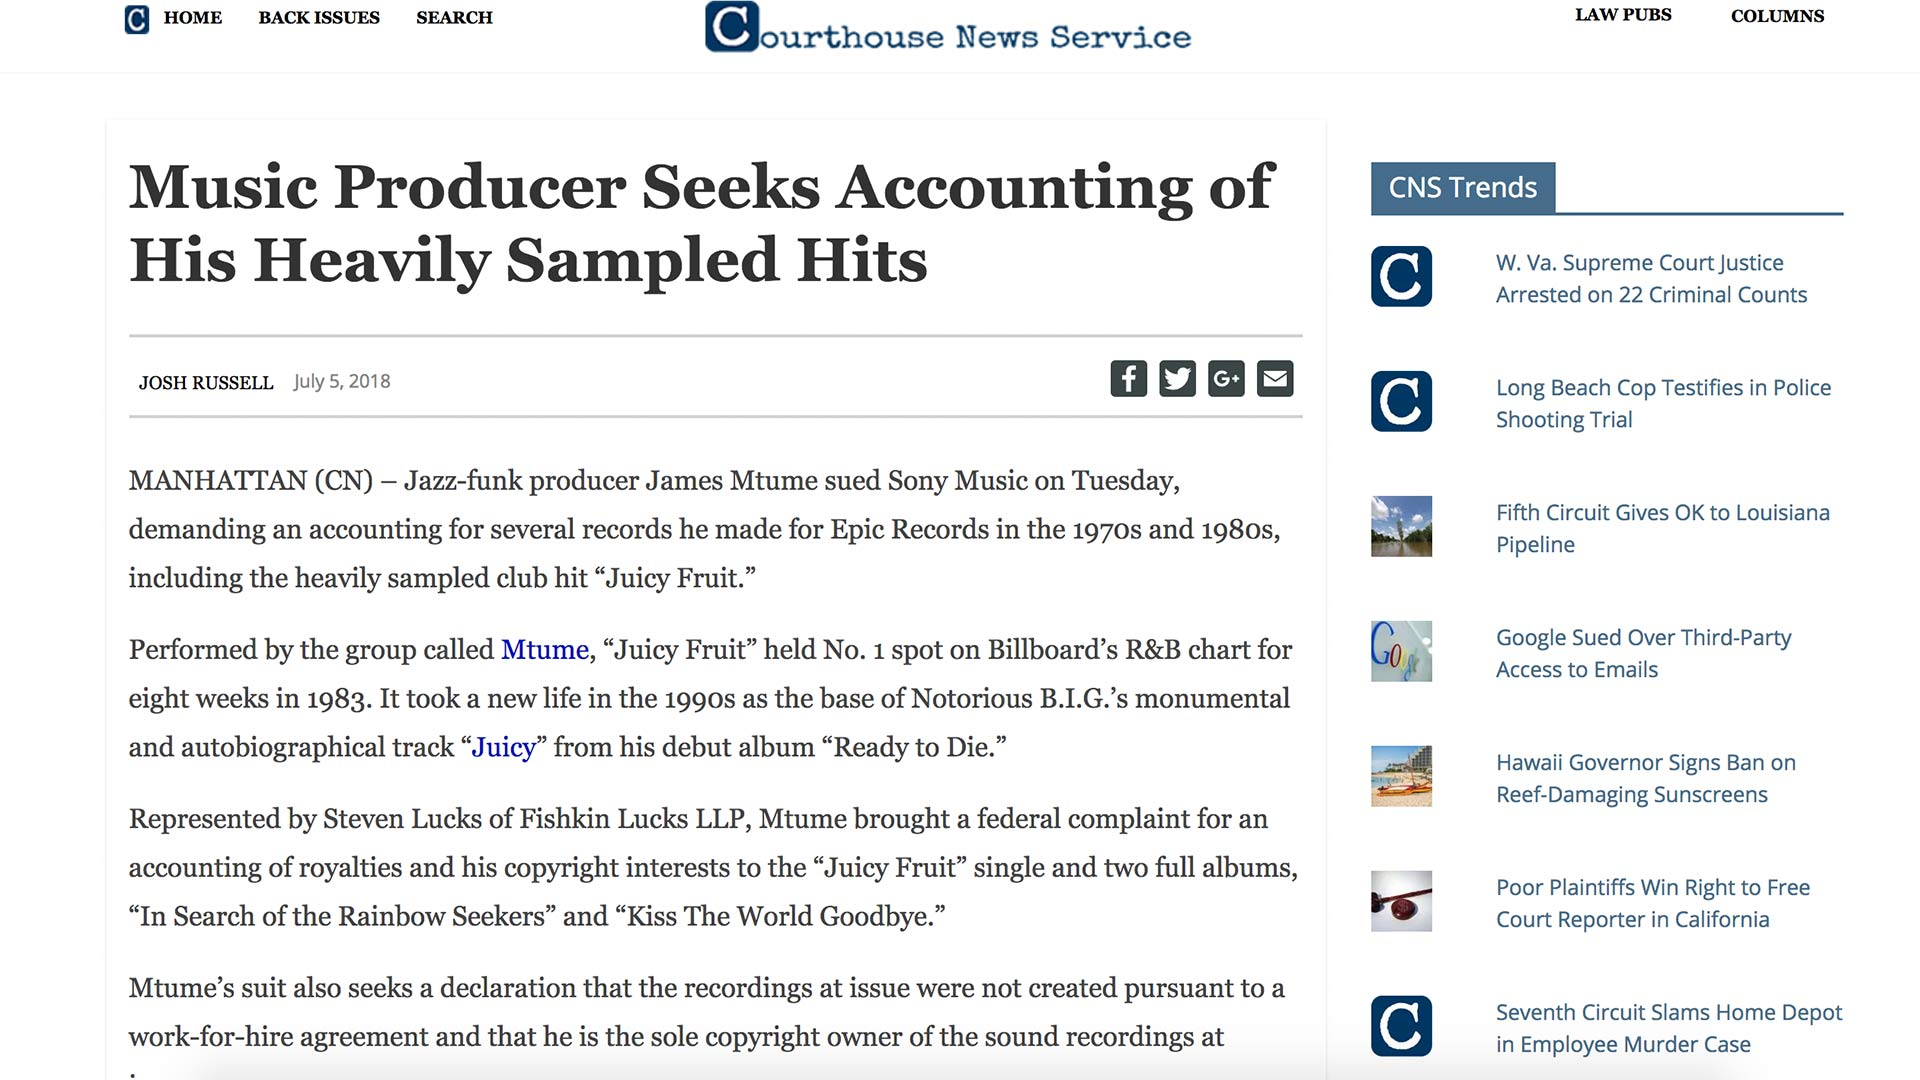 Fairness Rocks News Music Producer Seeks Accounting of His Heavily Sampled Hits